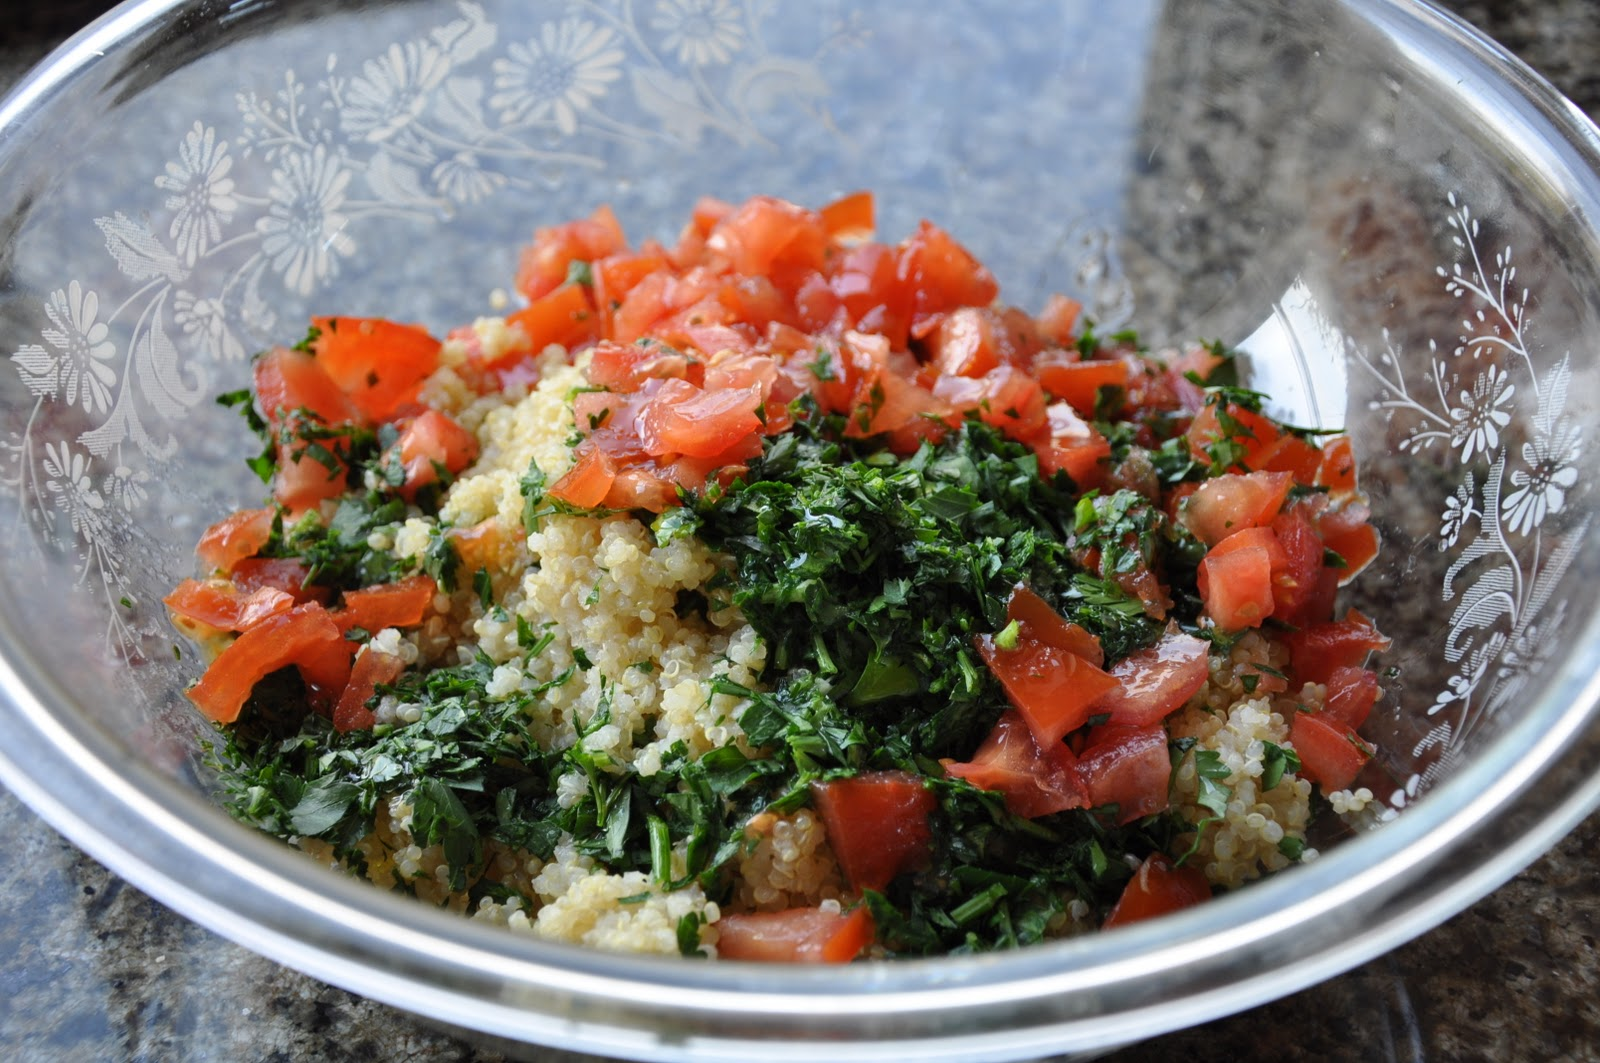 Tossed tabouli